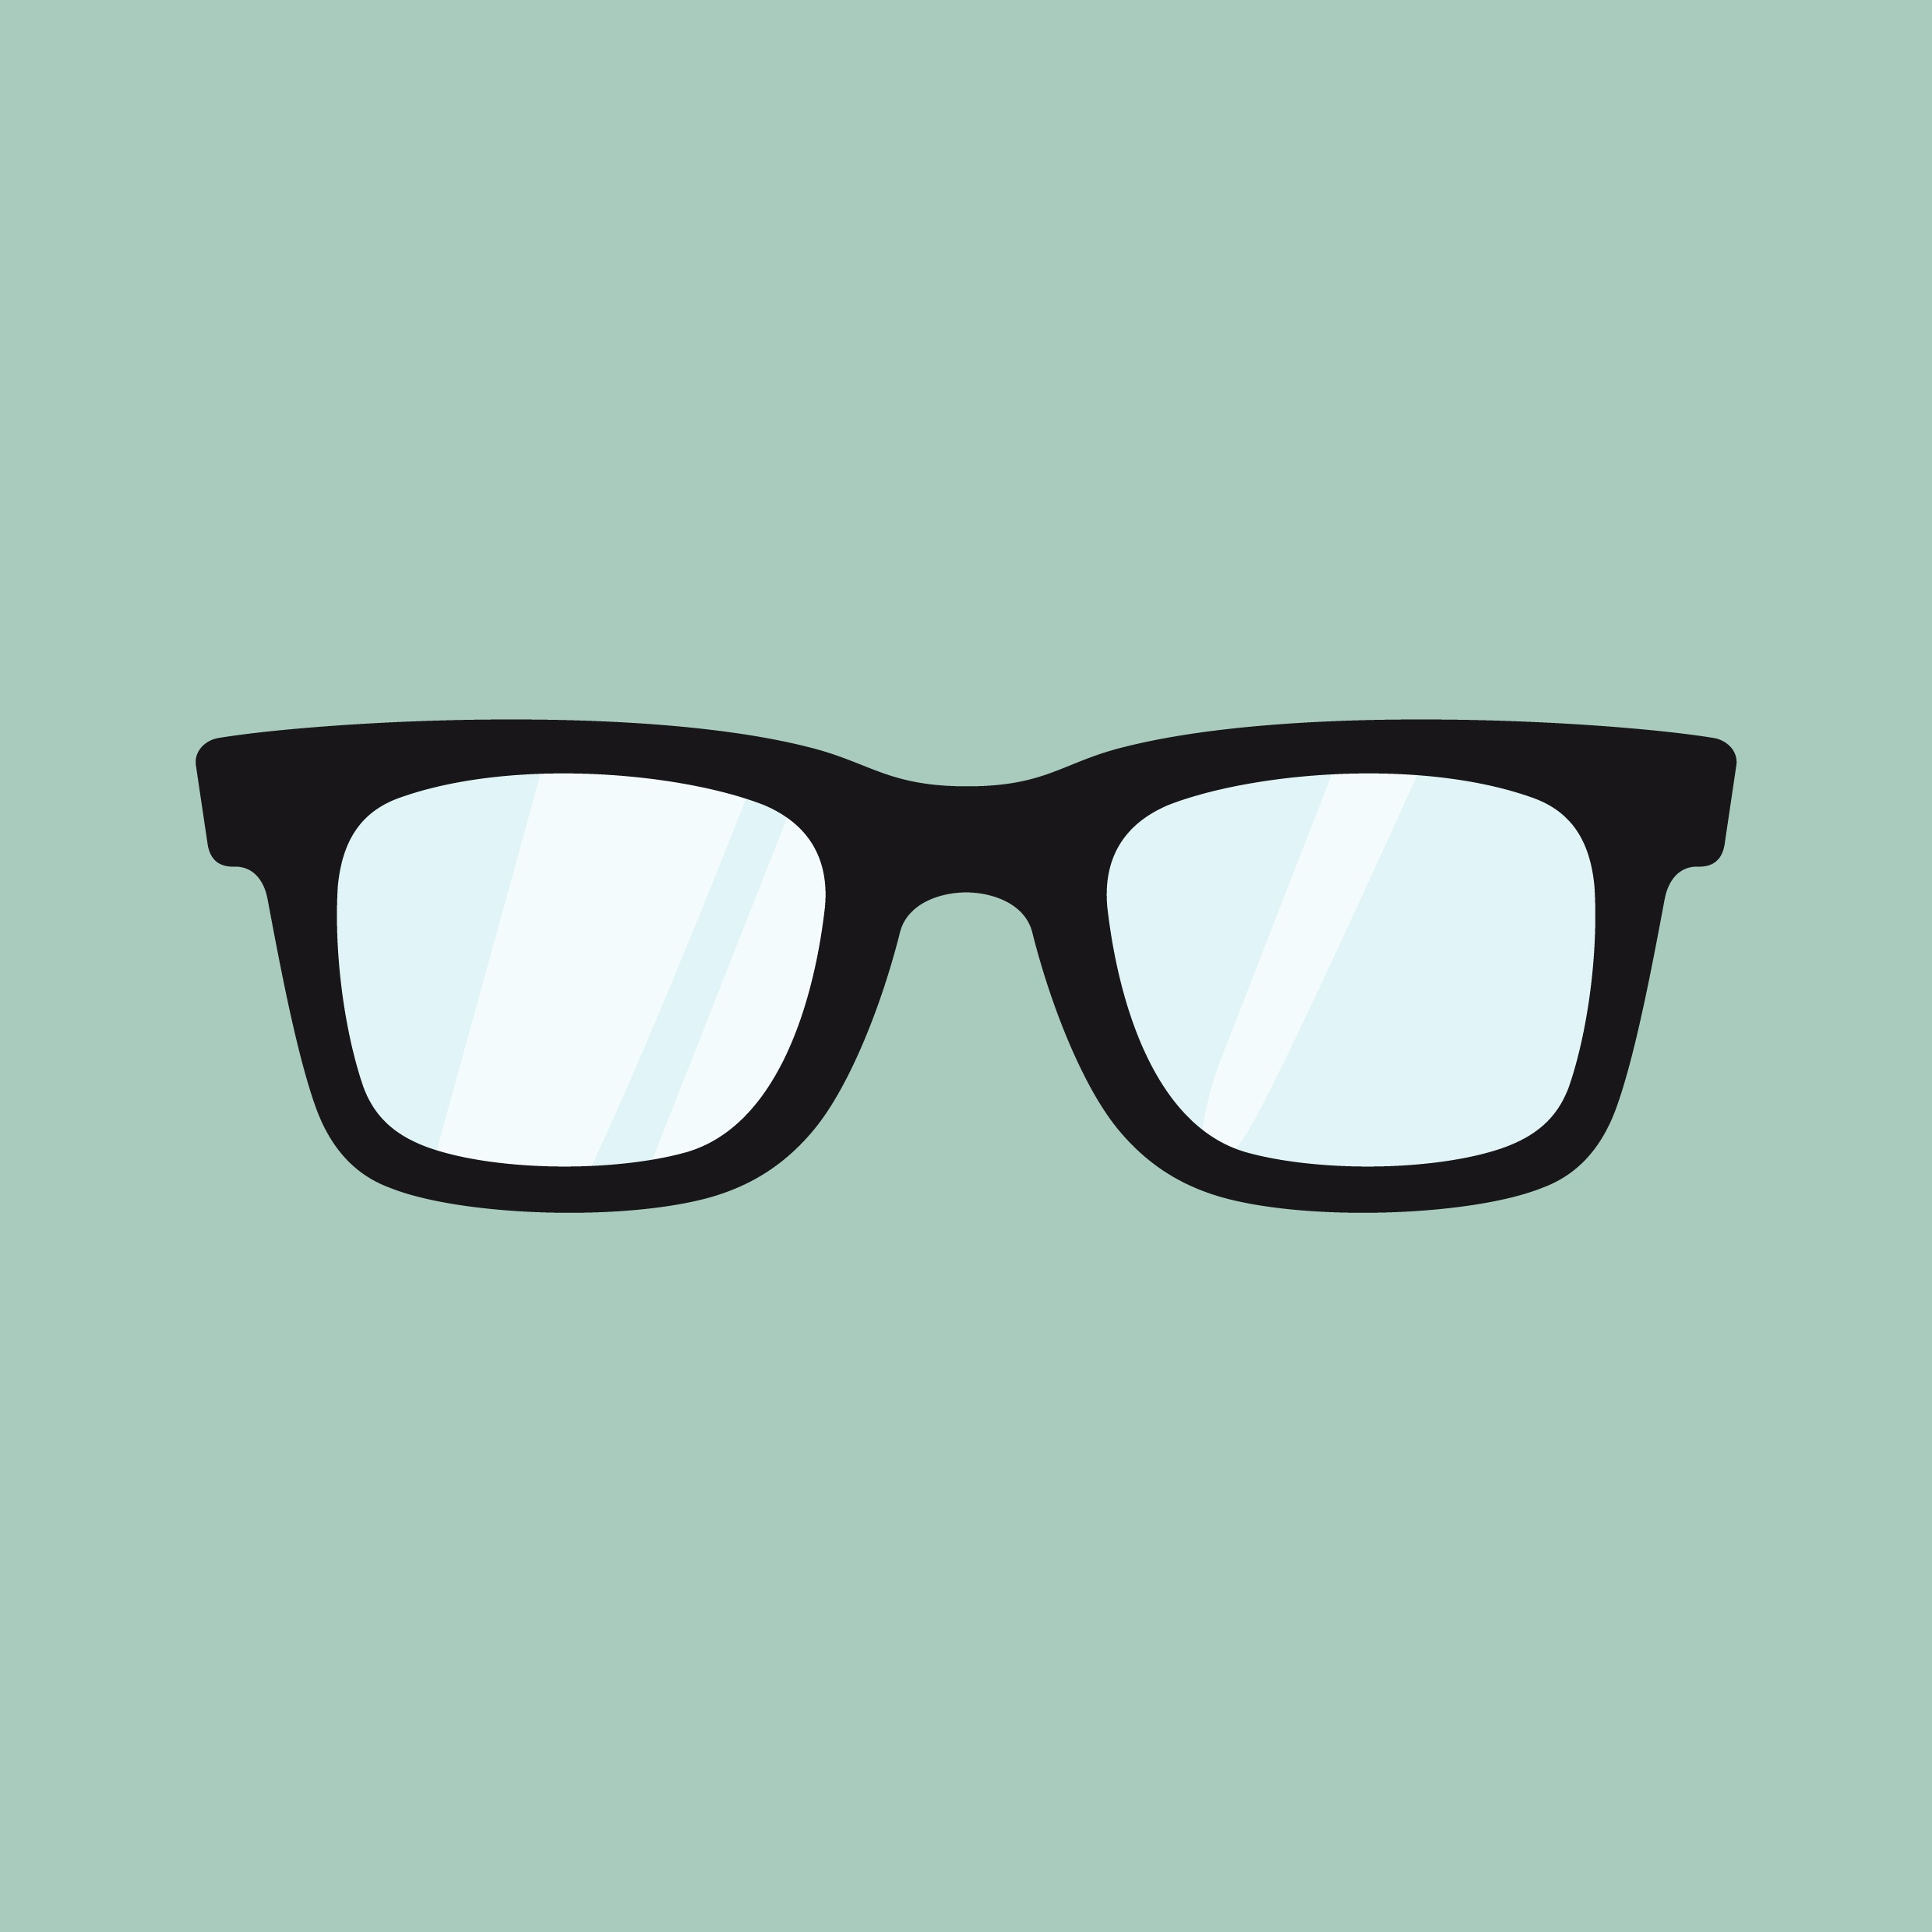 Learn why so many practices are using VisionWeb's online lab ordering portal in their optometric practice.